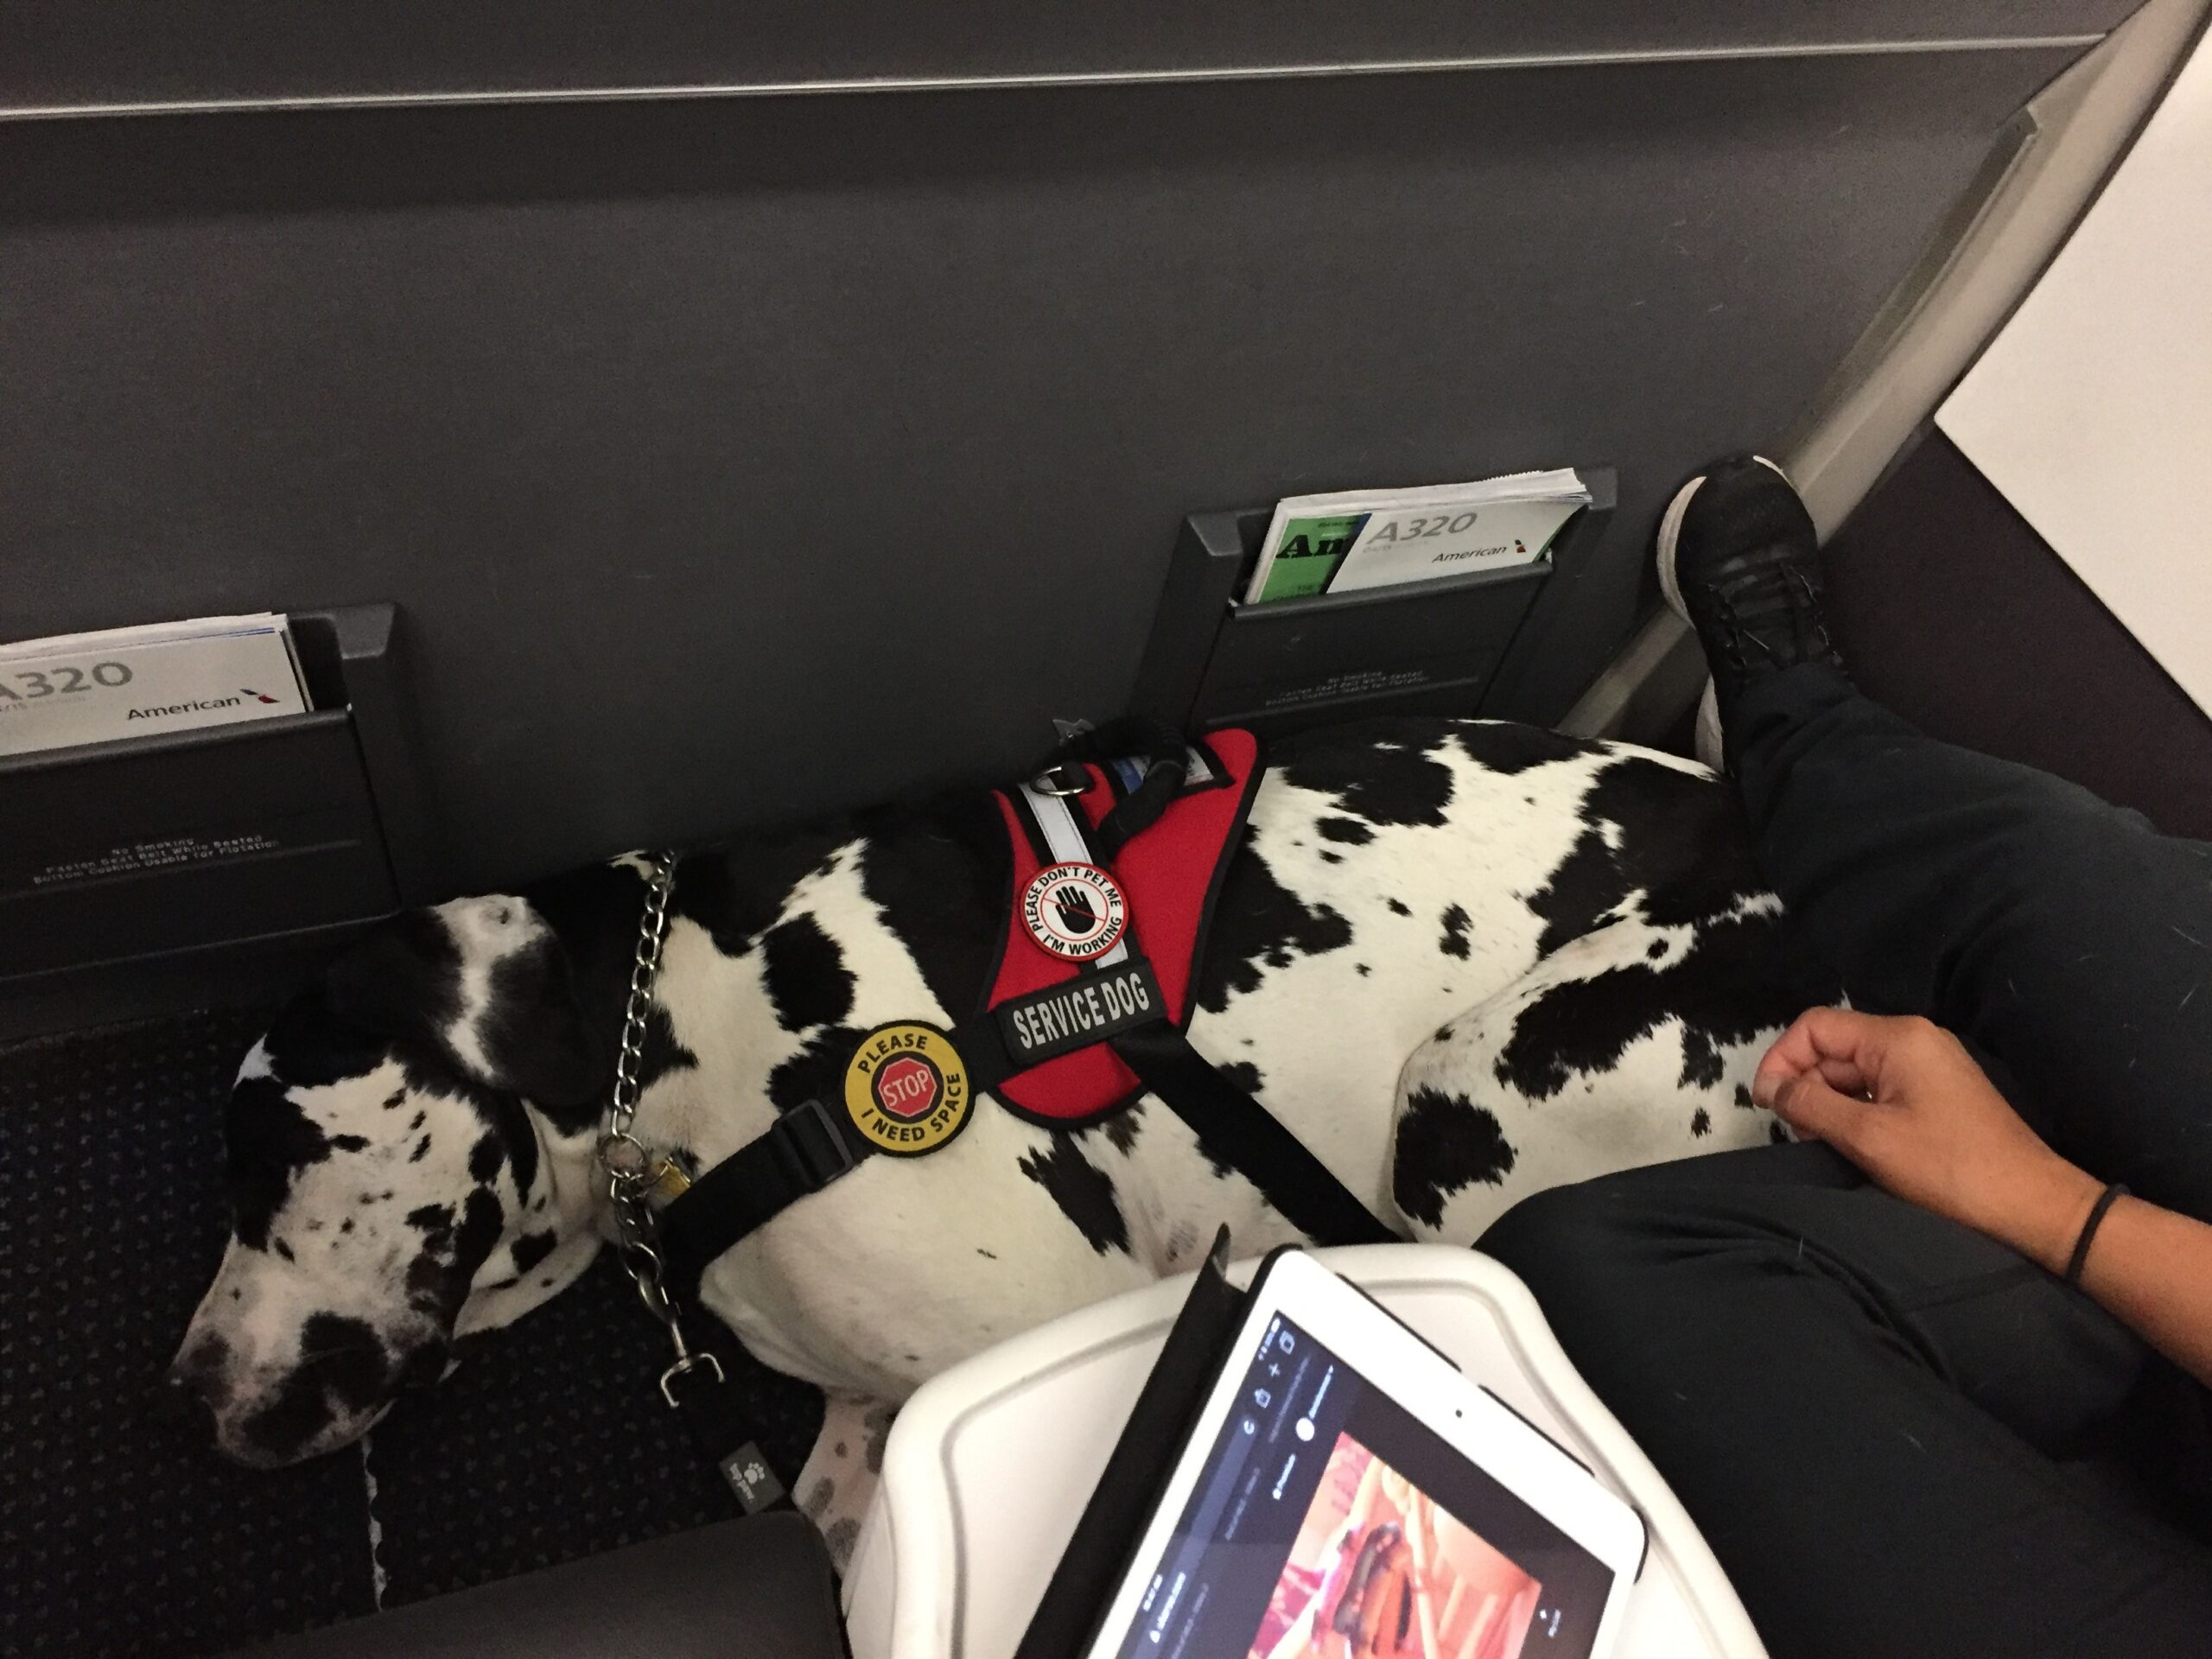 dog on airplane, service dog, travel with dog